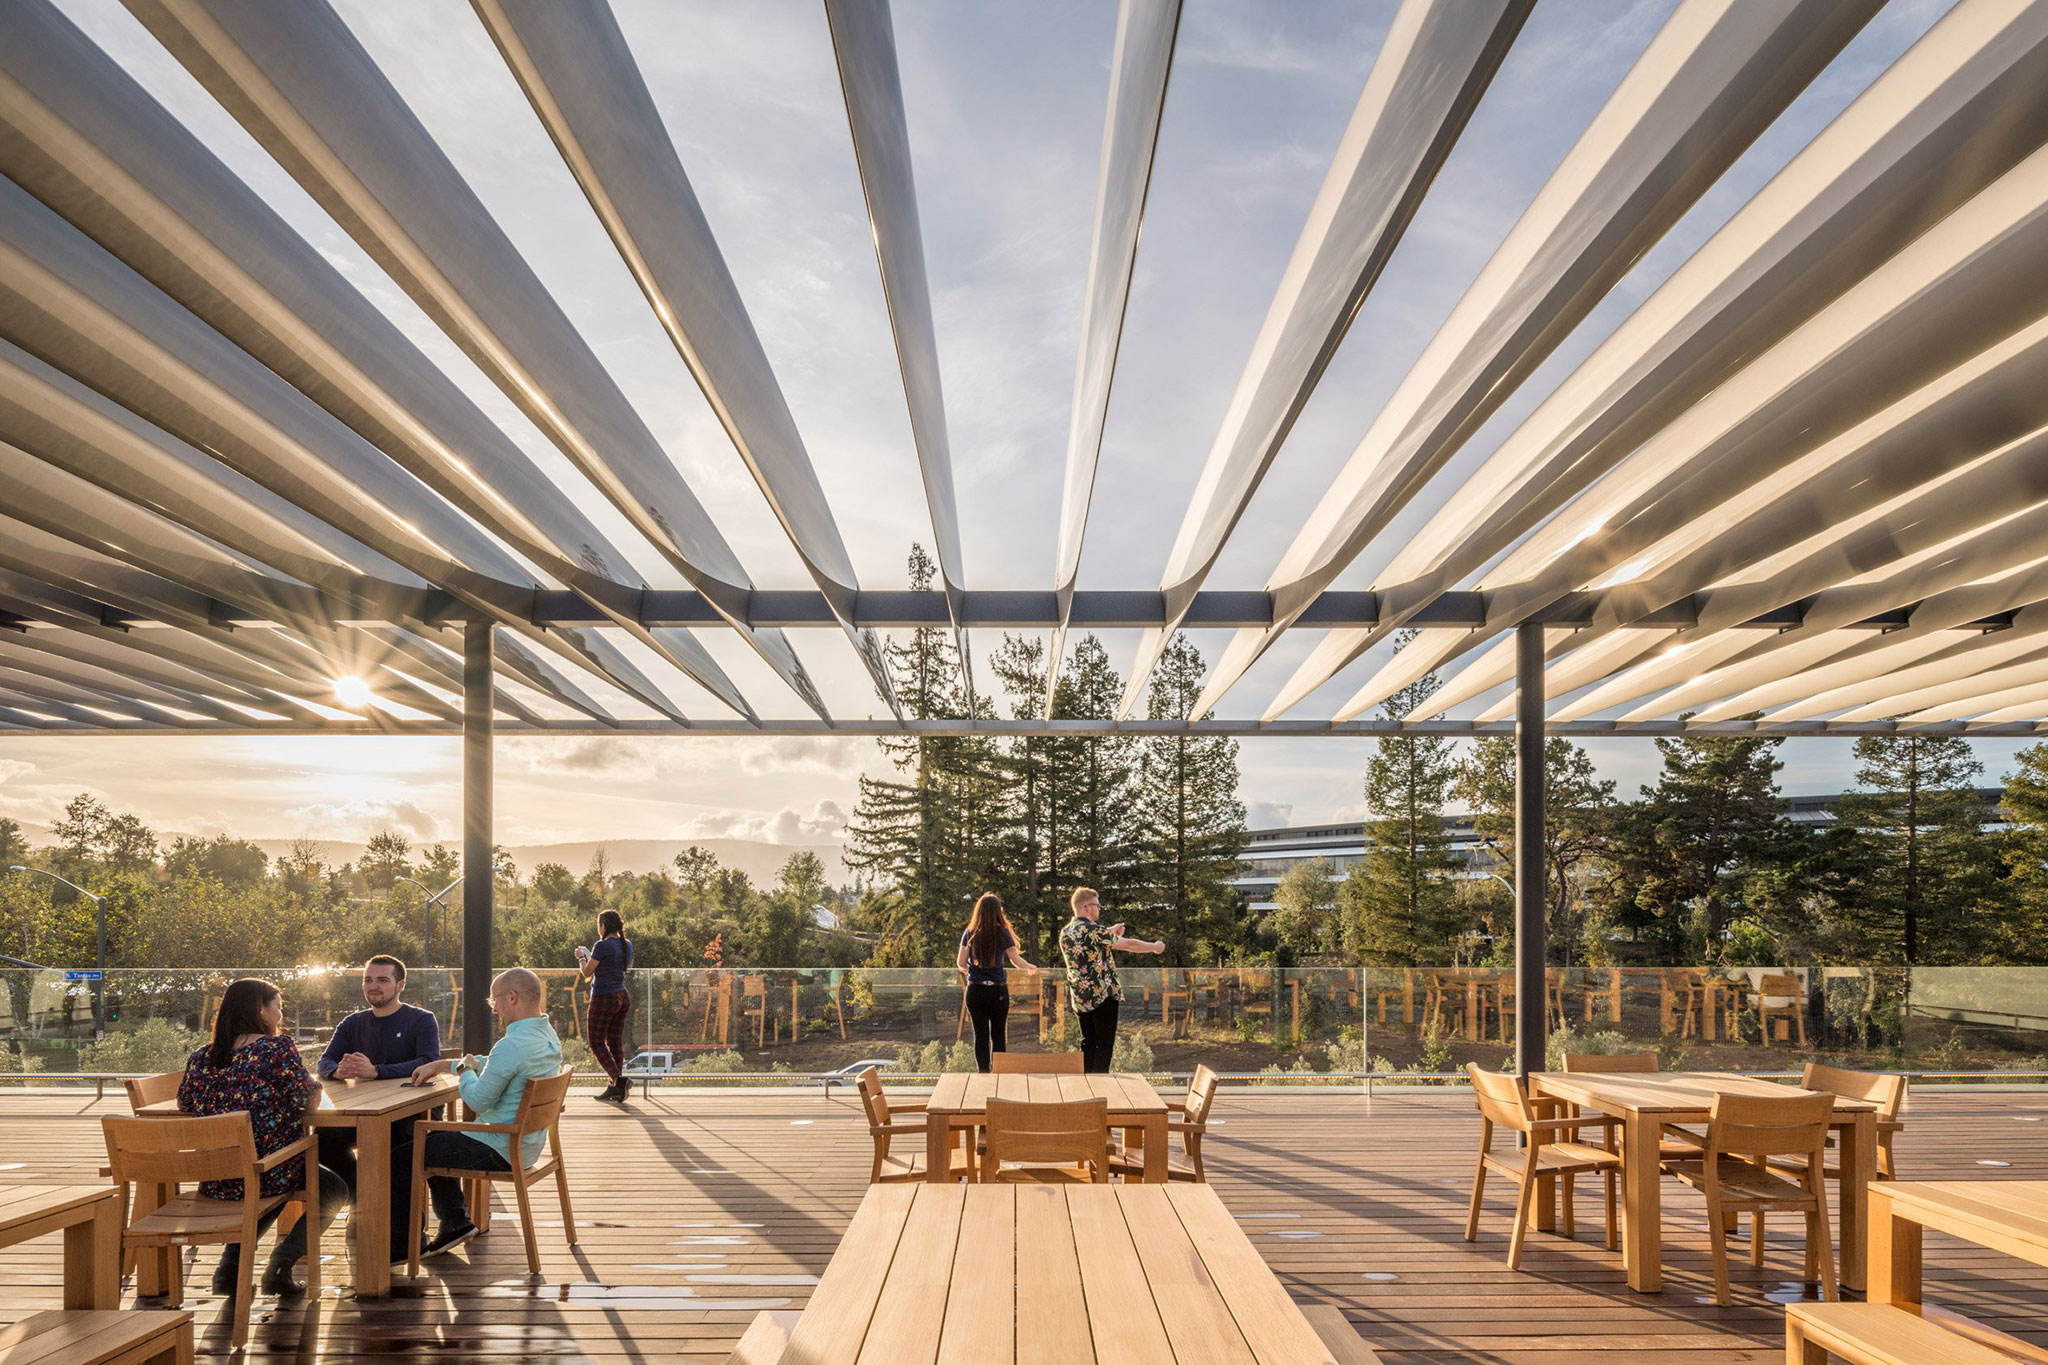 Apple Park Visitor Center Designed By Foster Partners